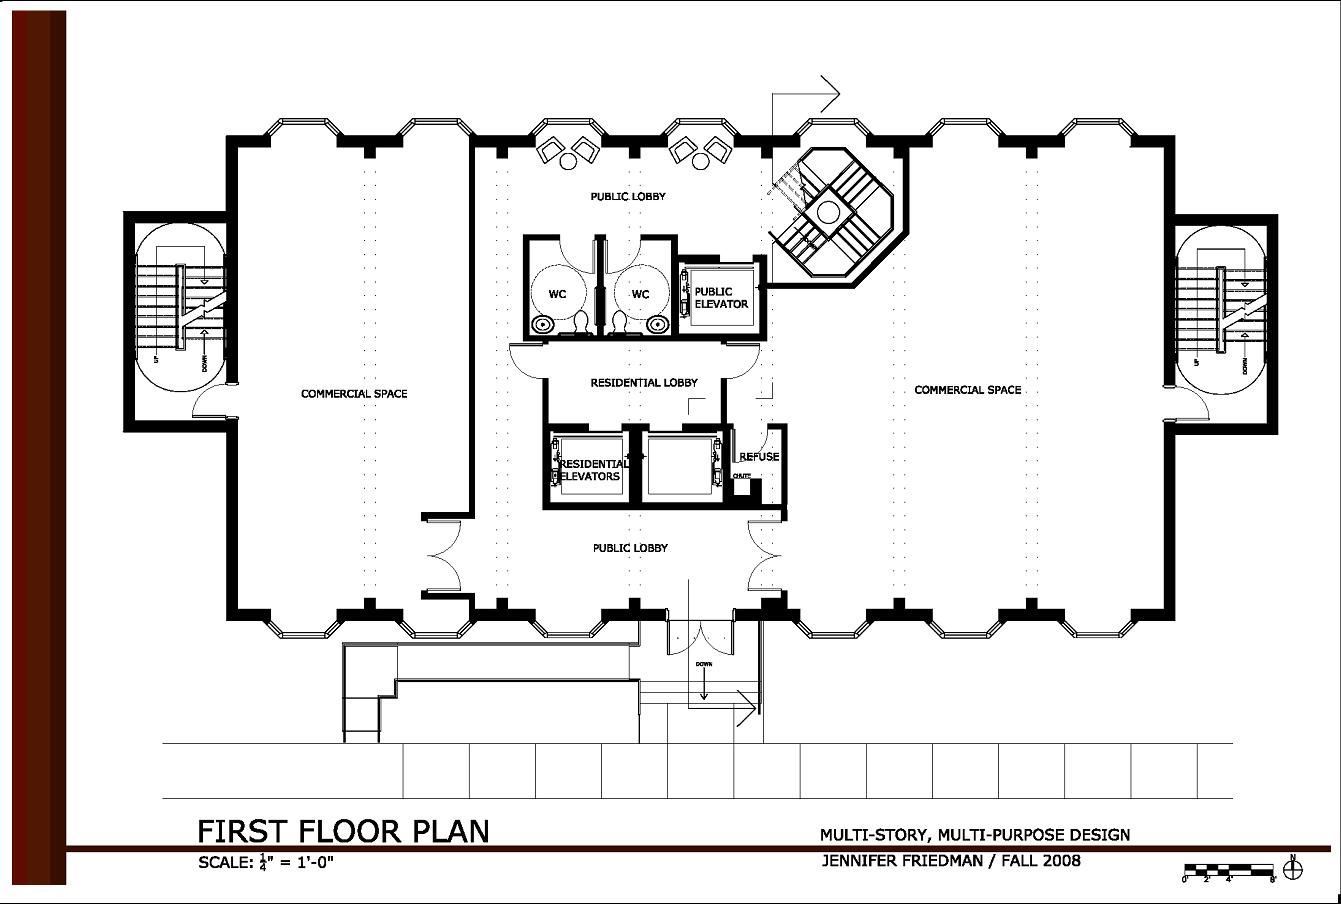 17 genius two story office building plans house plans for 2 story building plans